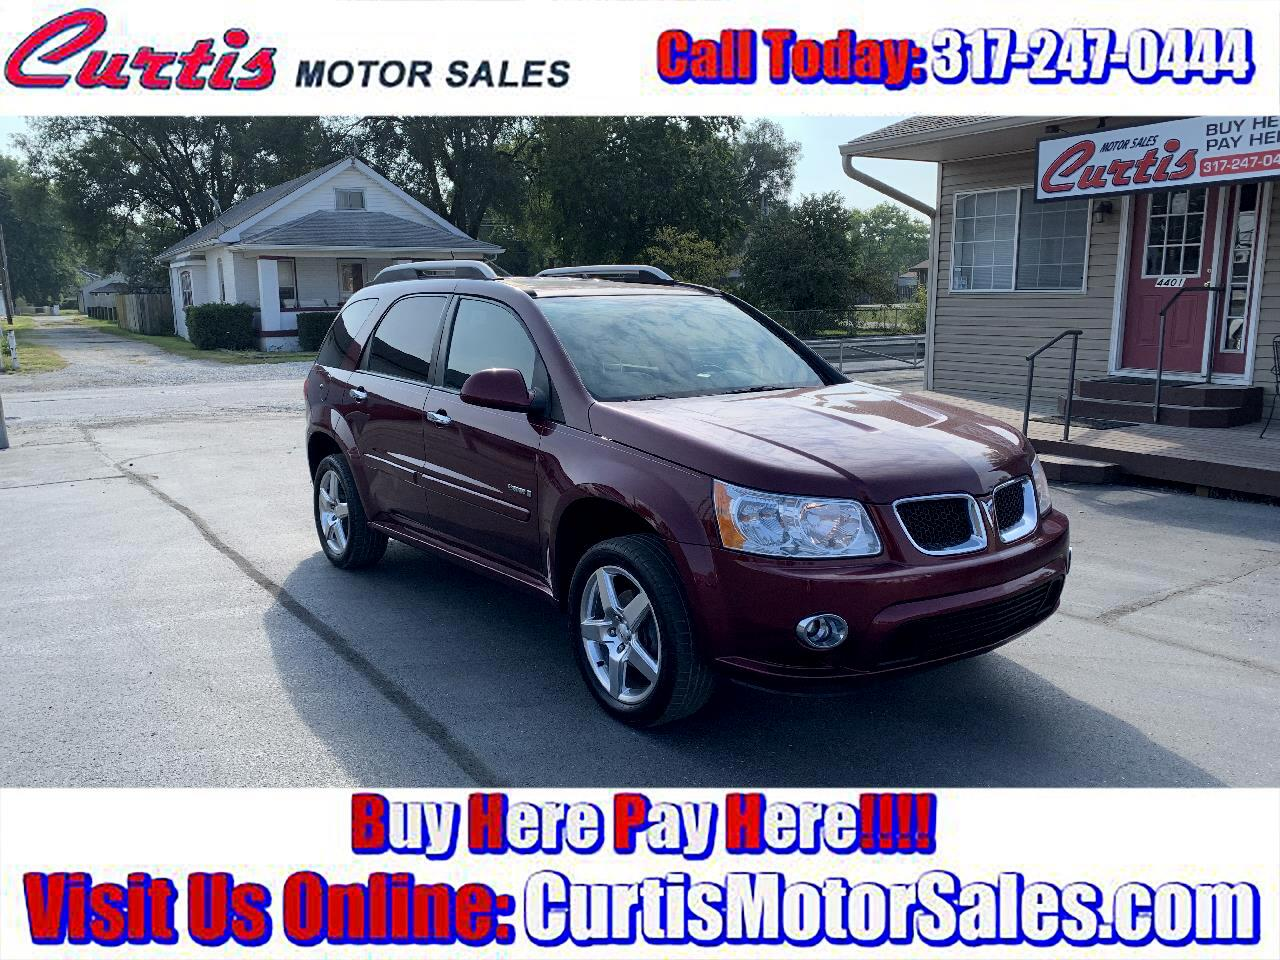 2009 Pontiac Torrent FWD GXP